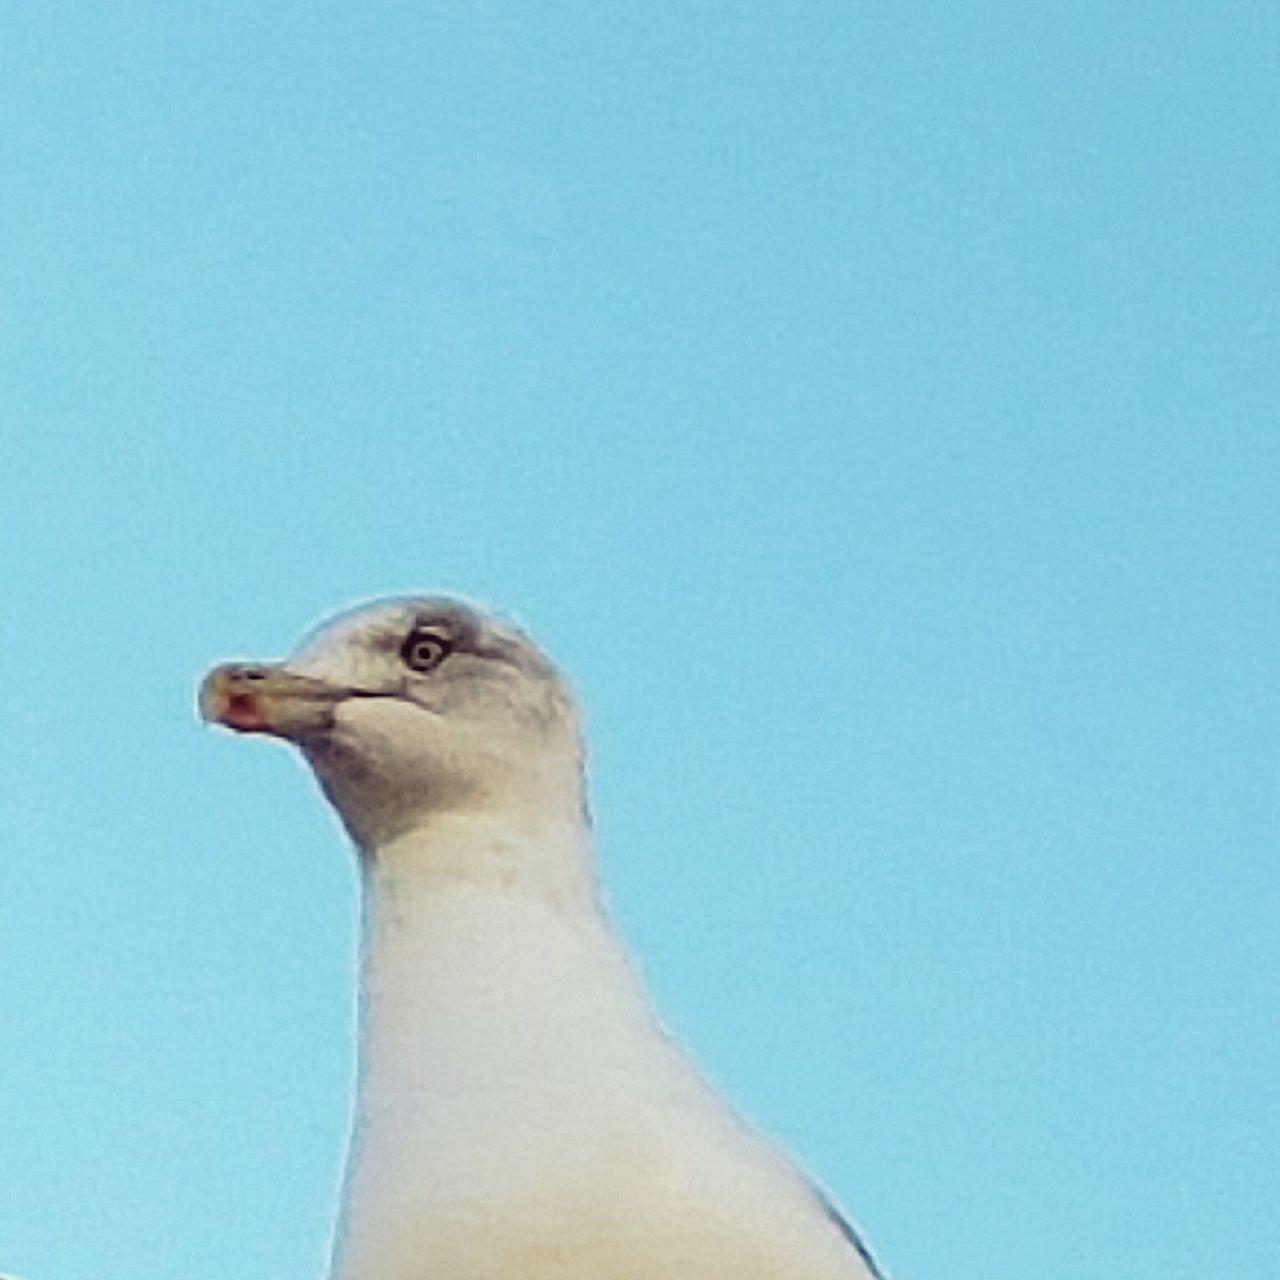 Bird No People Outdoors Sky Day Seagull Clear Sky Close-up Animal Wildlife Animals In The Wild Animal Themes Blue One Animal Nature